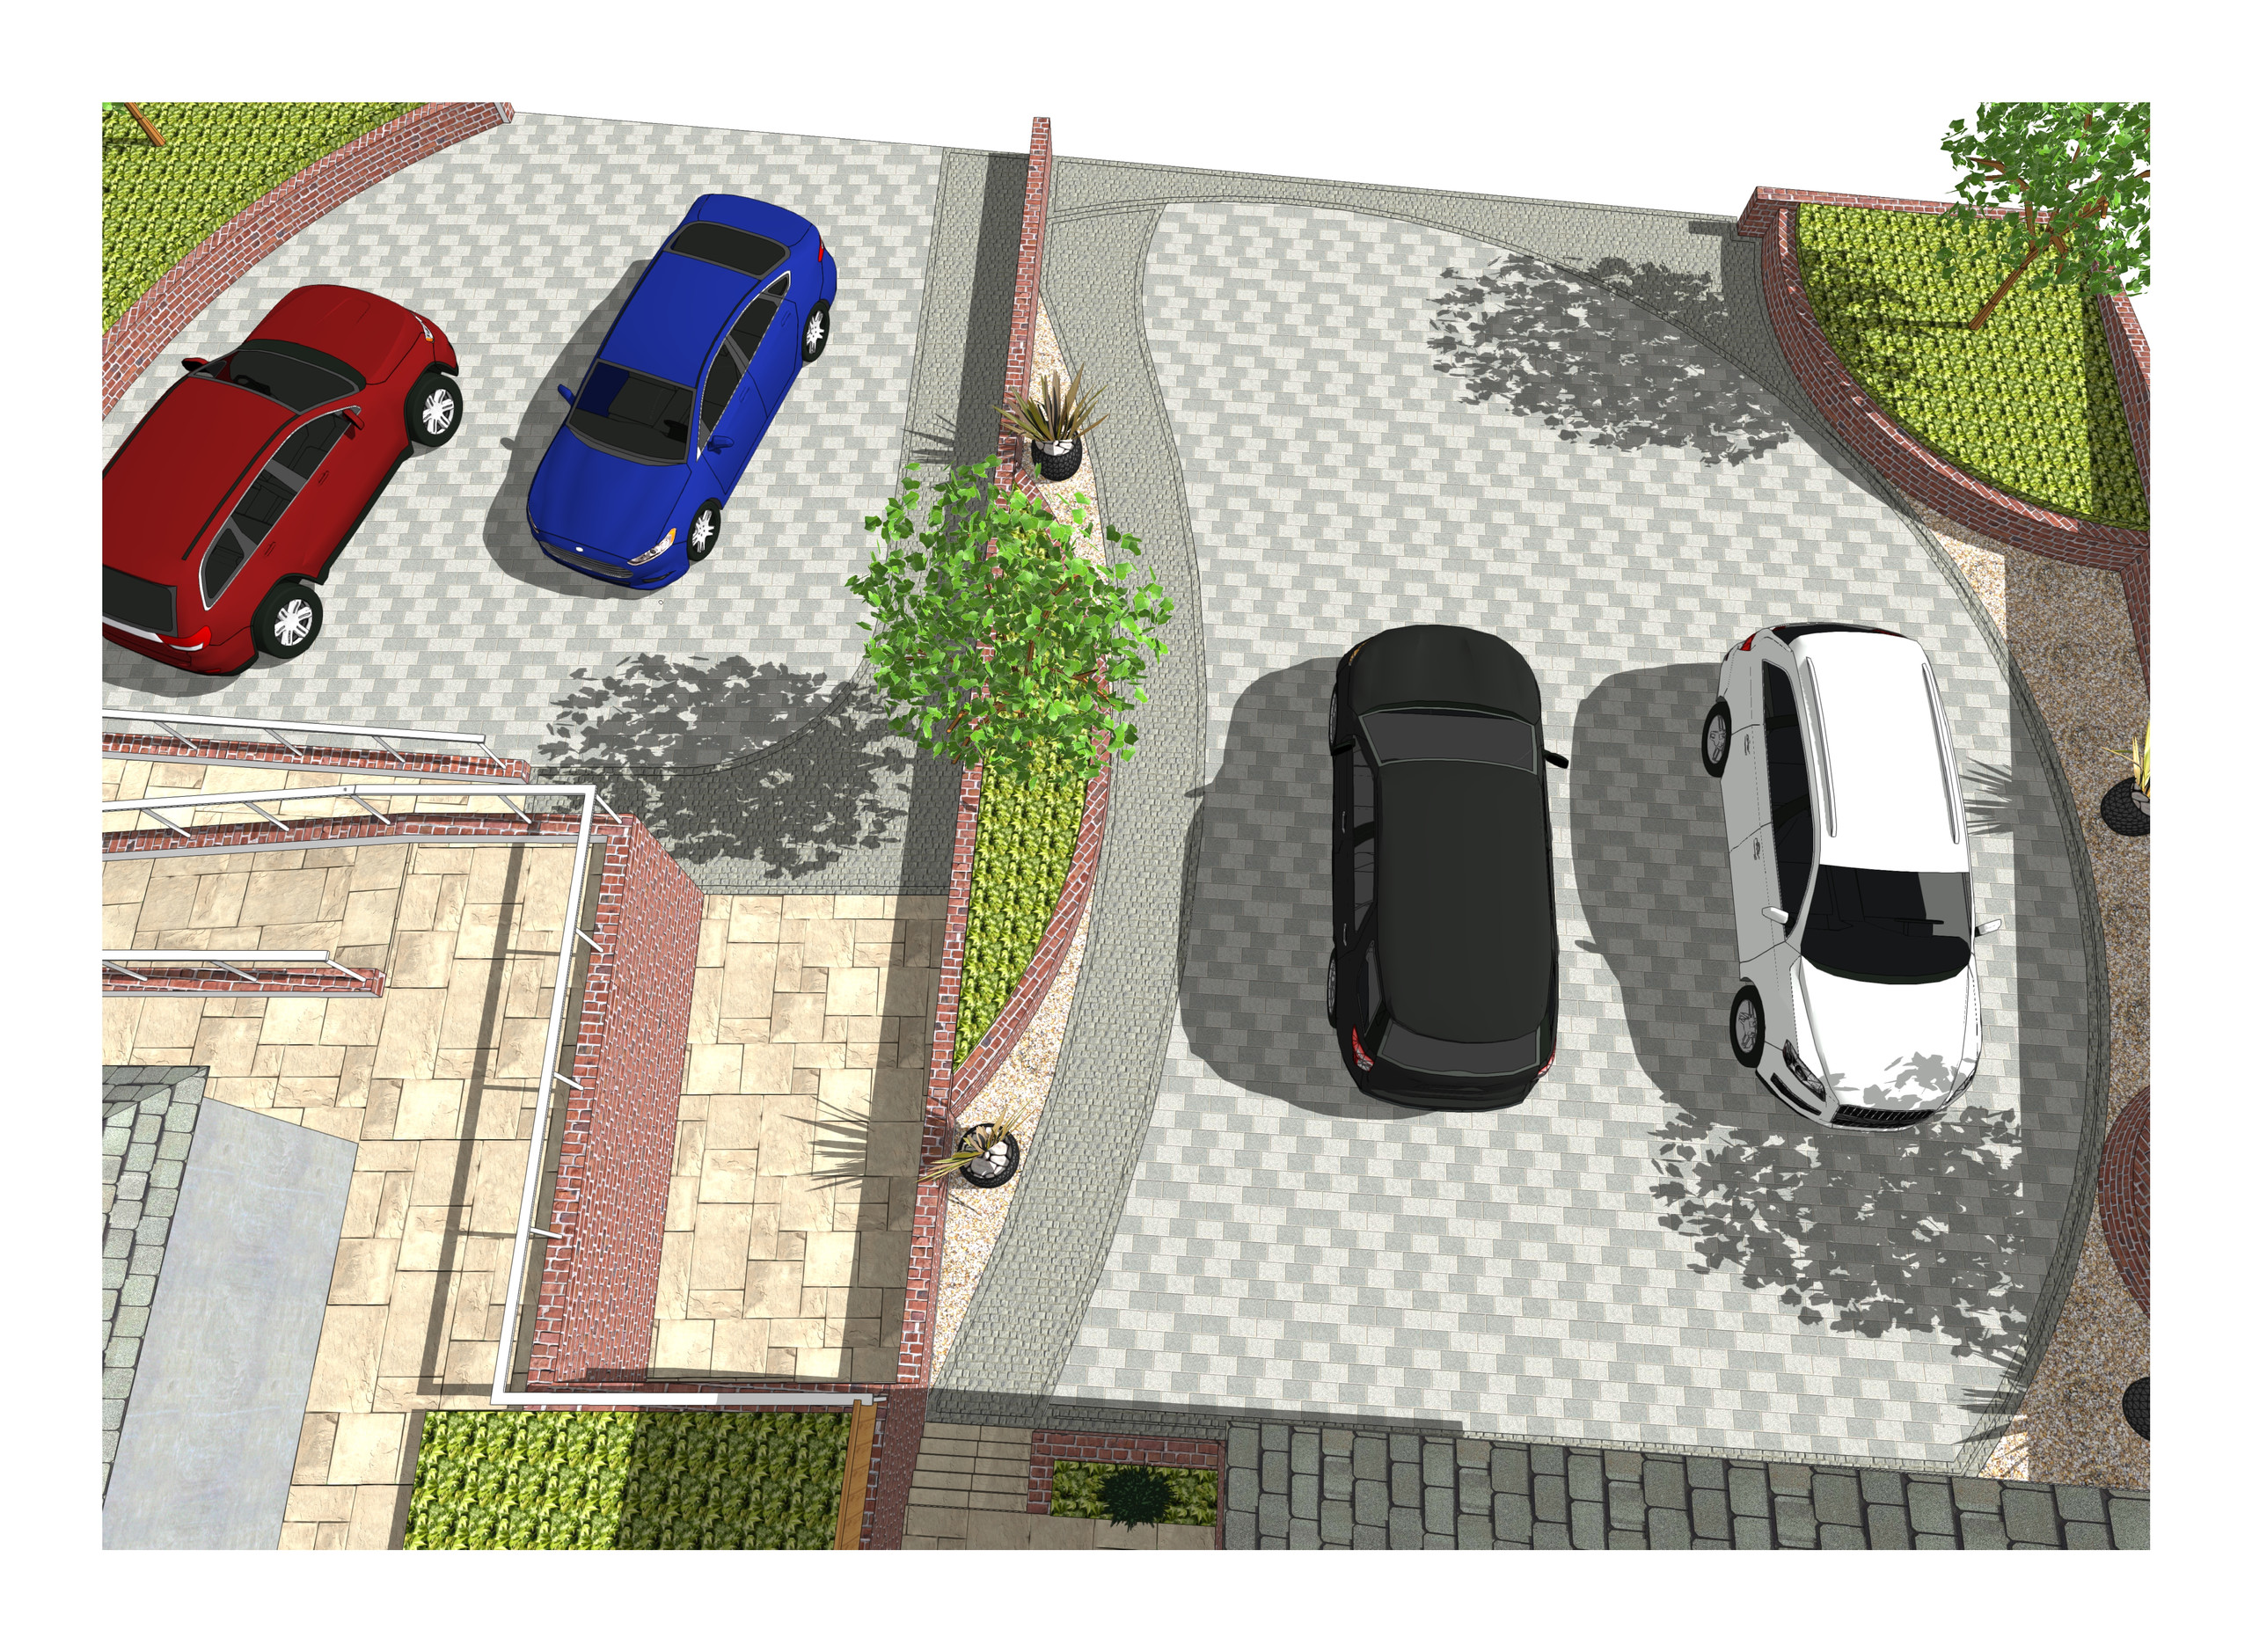 5. 3D images for a new build property in Uton West Yorkshire. Garden designer in Wakefield